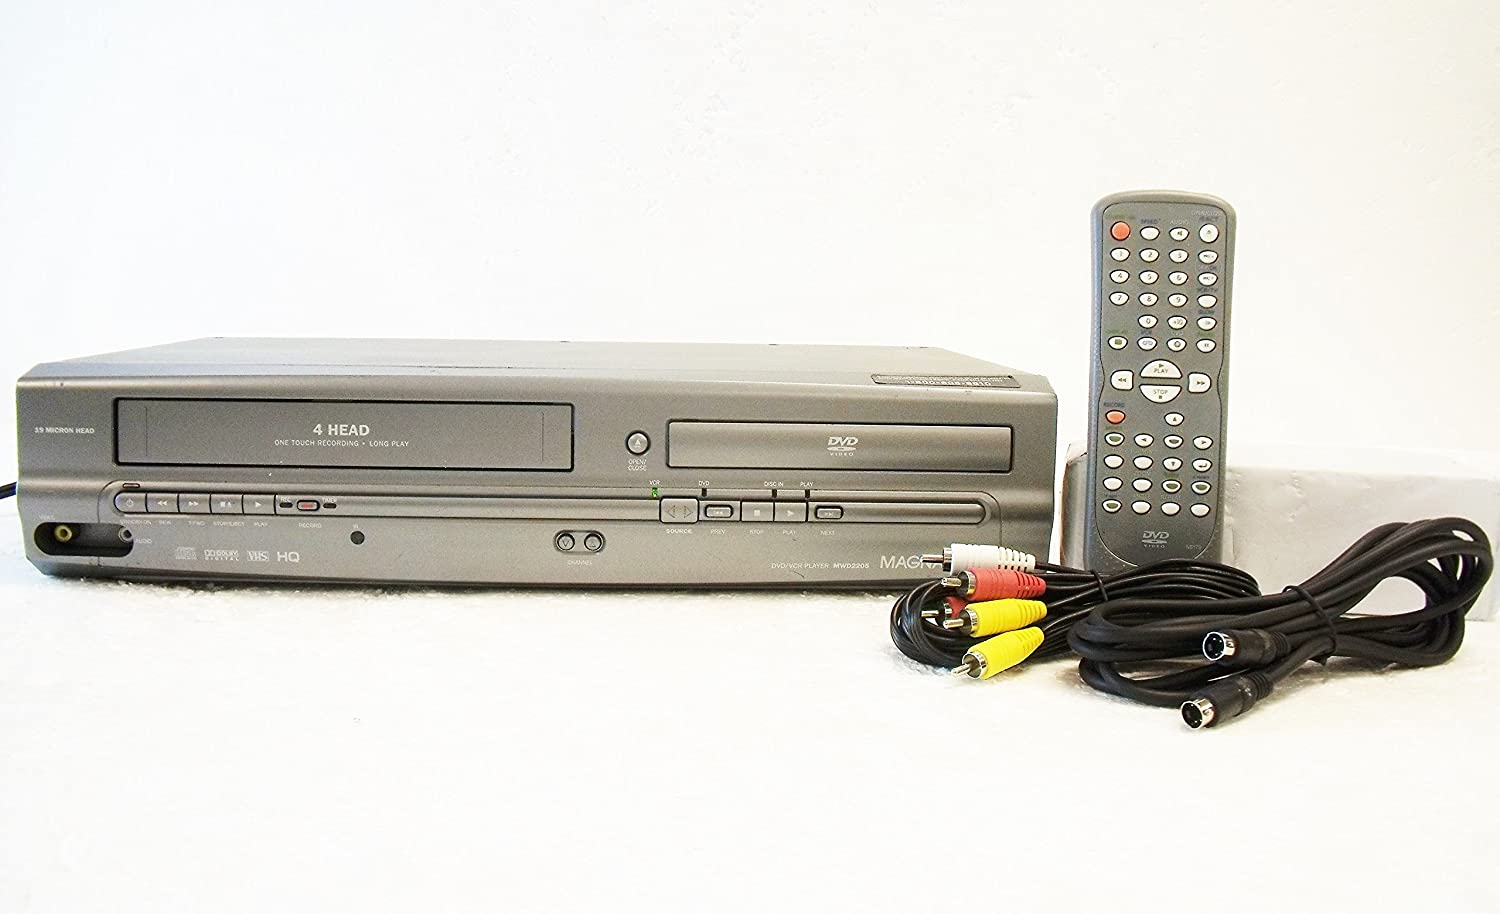 Magnavox Mwd2205 Dvd Vcr Combination Player Electronics Working Of Digital Versatile Disc